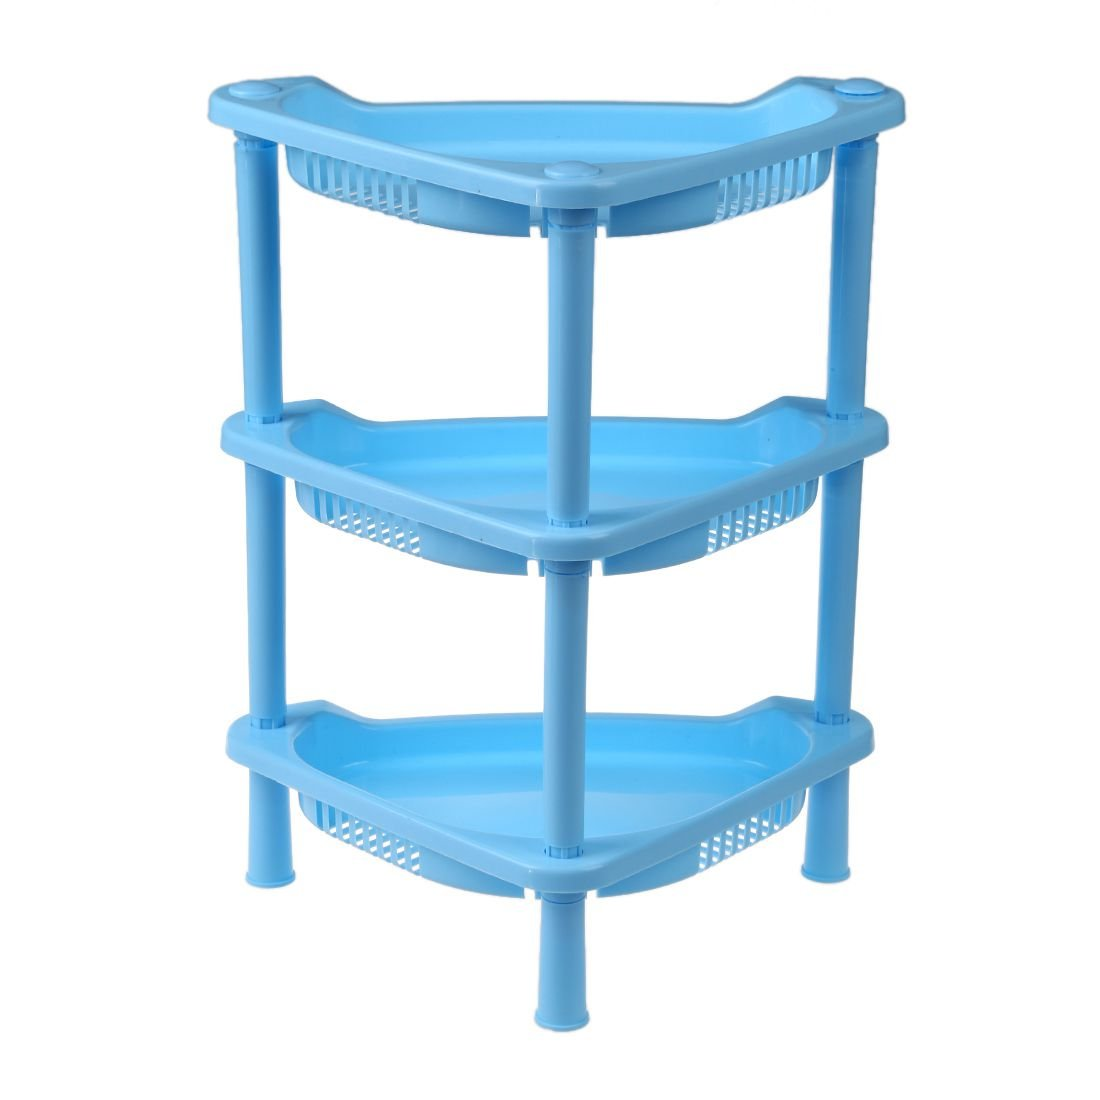 Amazon.com: SODIAL(R) 3 Tier Plastic Corner Shelf Organizer Cabinet ...